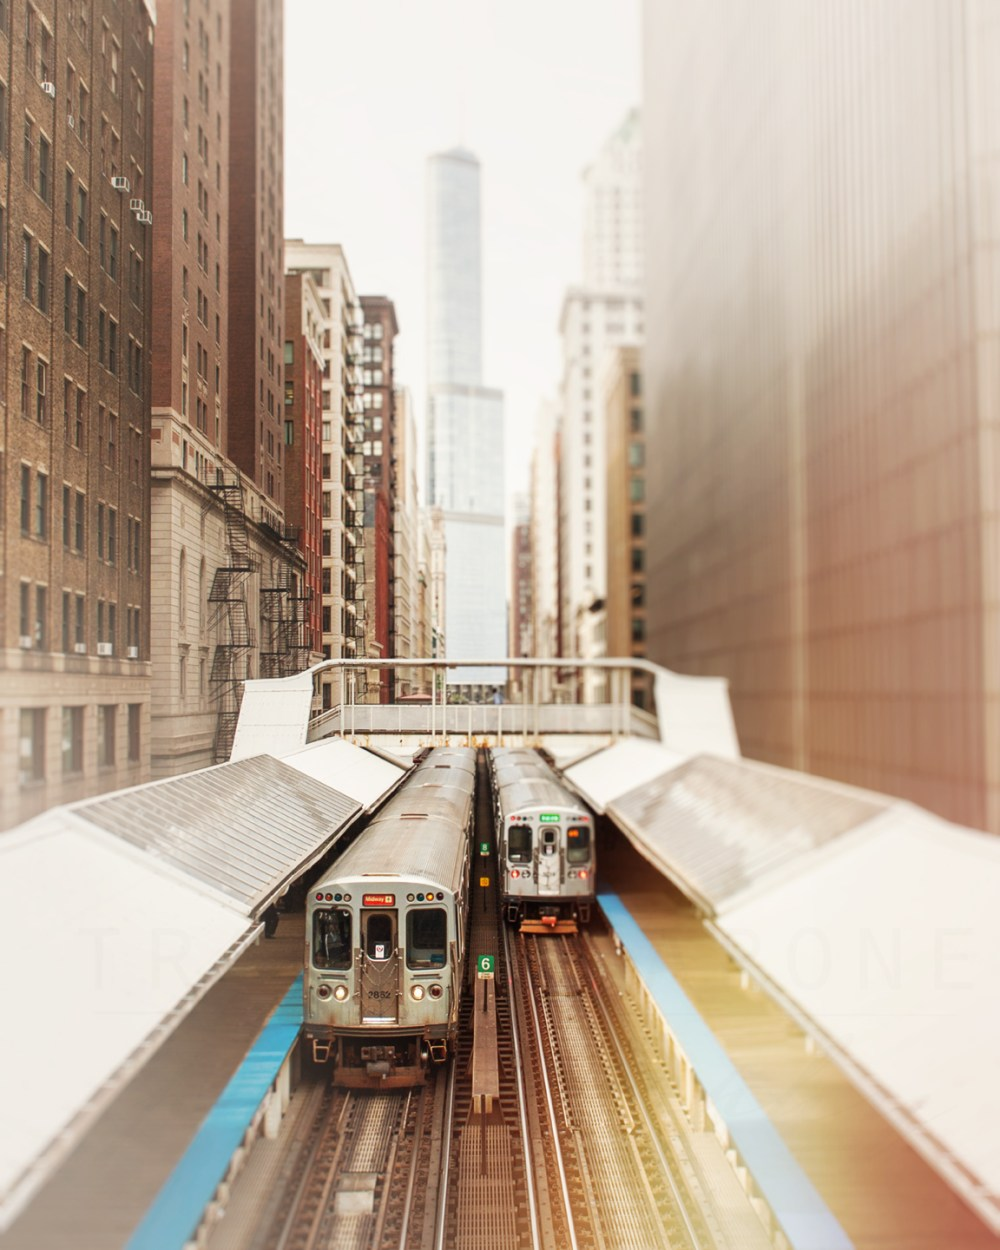 Two Chicago CTA trains running along the elevated tracks along Wabash. Chicago photography by Tracey Capone